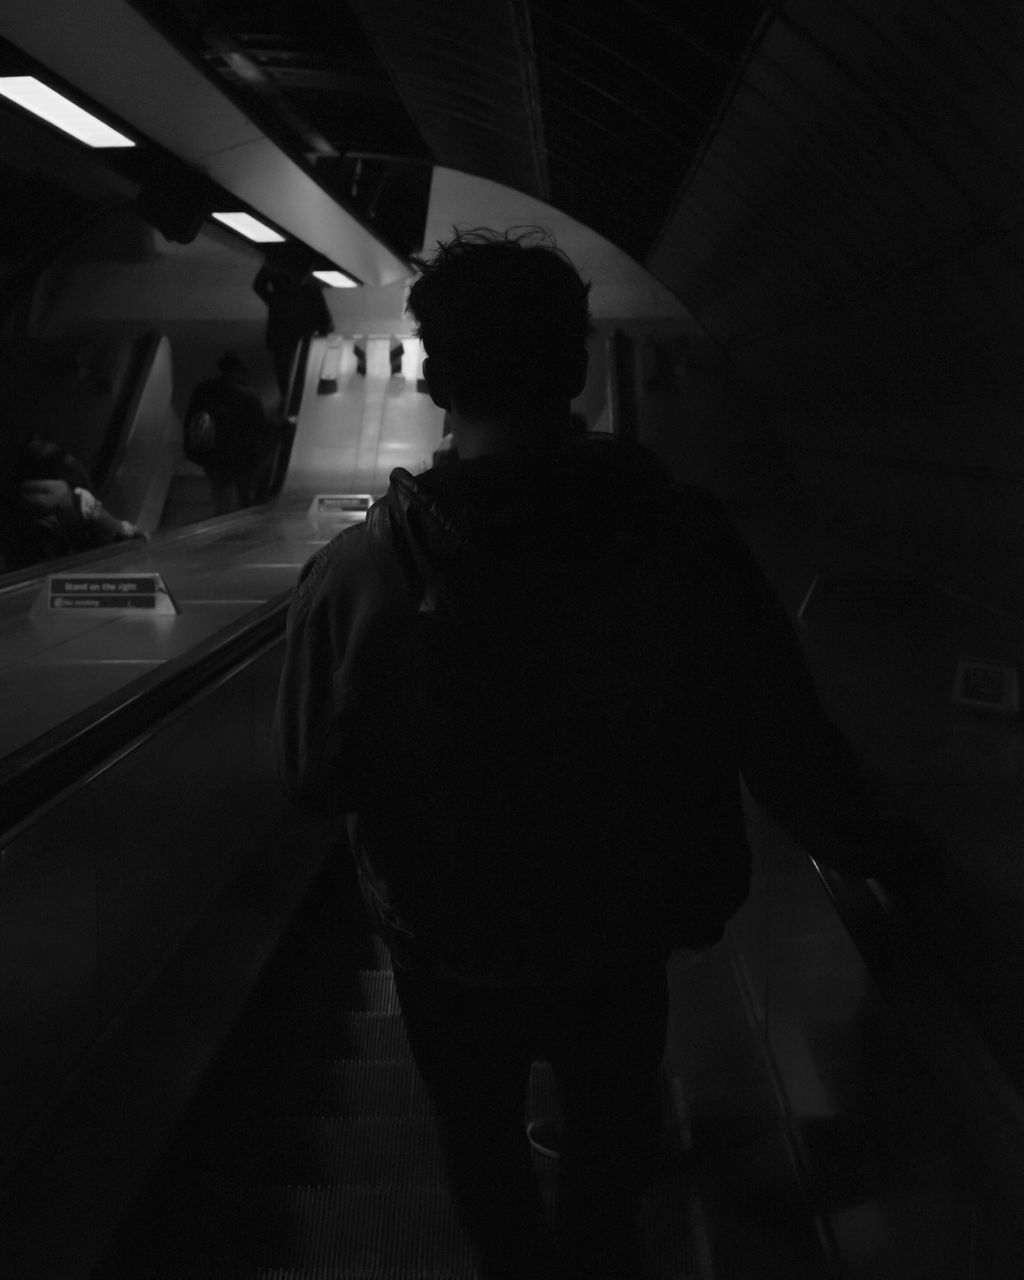 real people, rear view, transportation, standing, one person, travel, public transportation, lifestyles, illuminated, journey, men, full length, indoors, night, young adult, adult, people